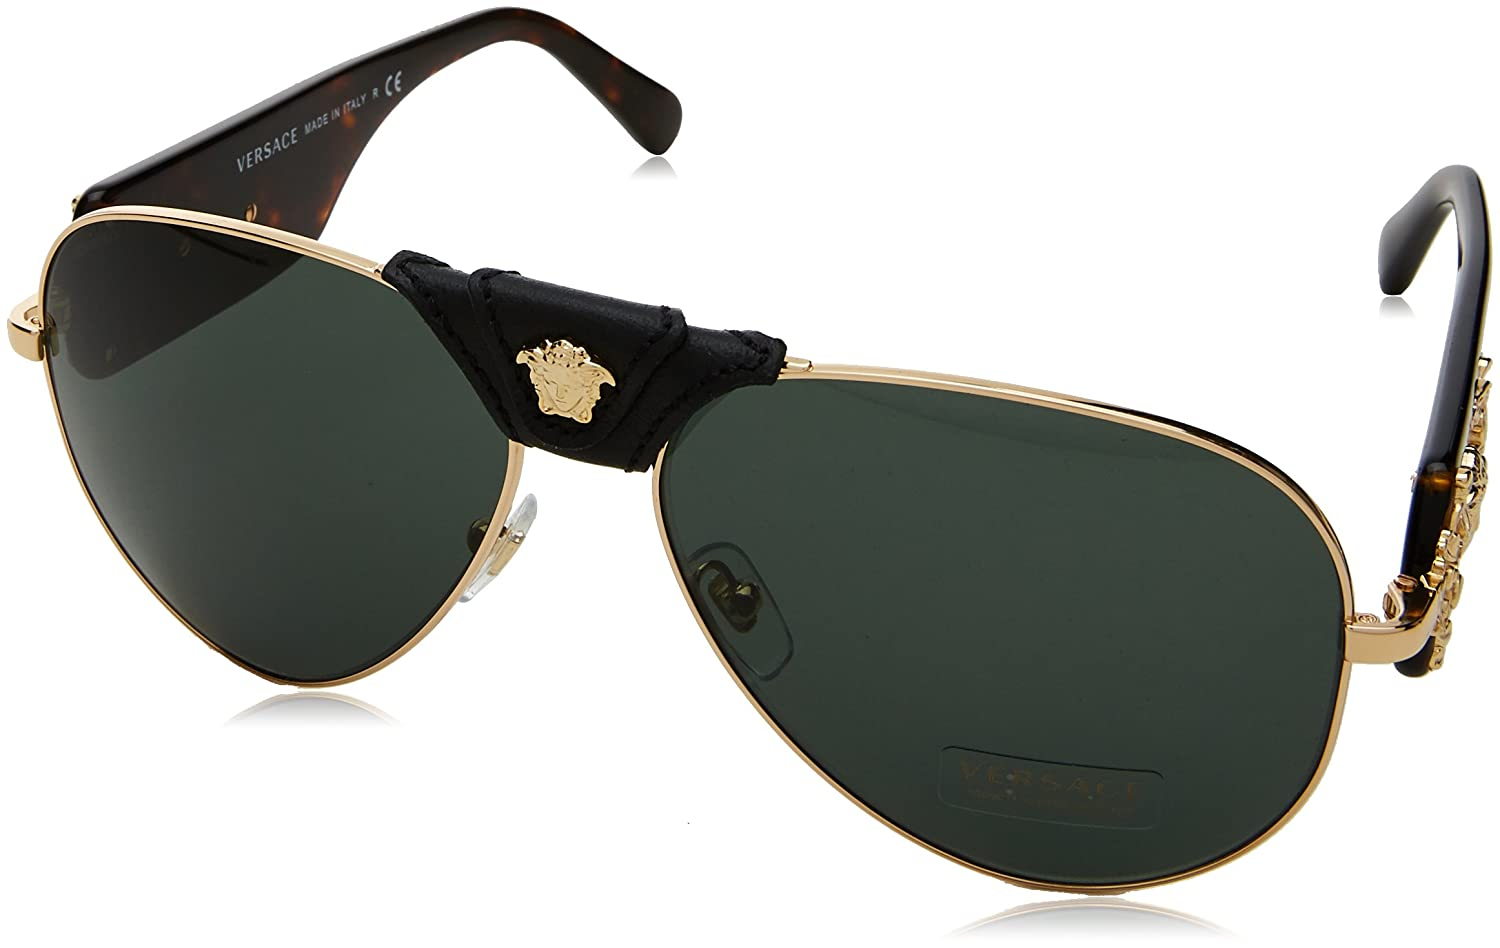 1b7ae5e5e1d Amazon.com: Versace Mens Sunglasses Gold/Grey Metal - Non-Polarized - 62mm:  Versace: Clothing